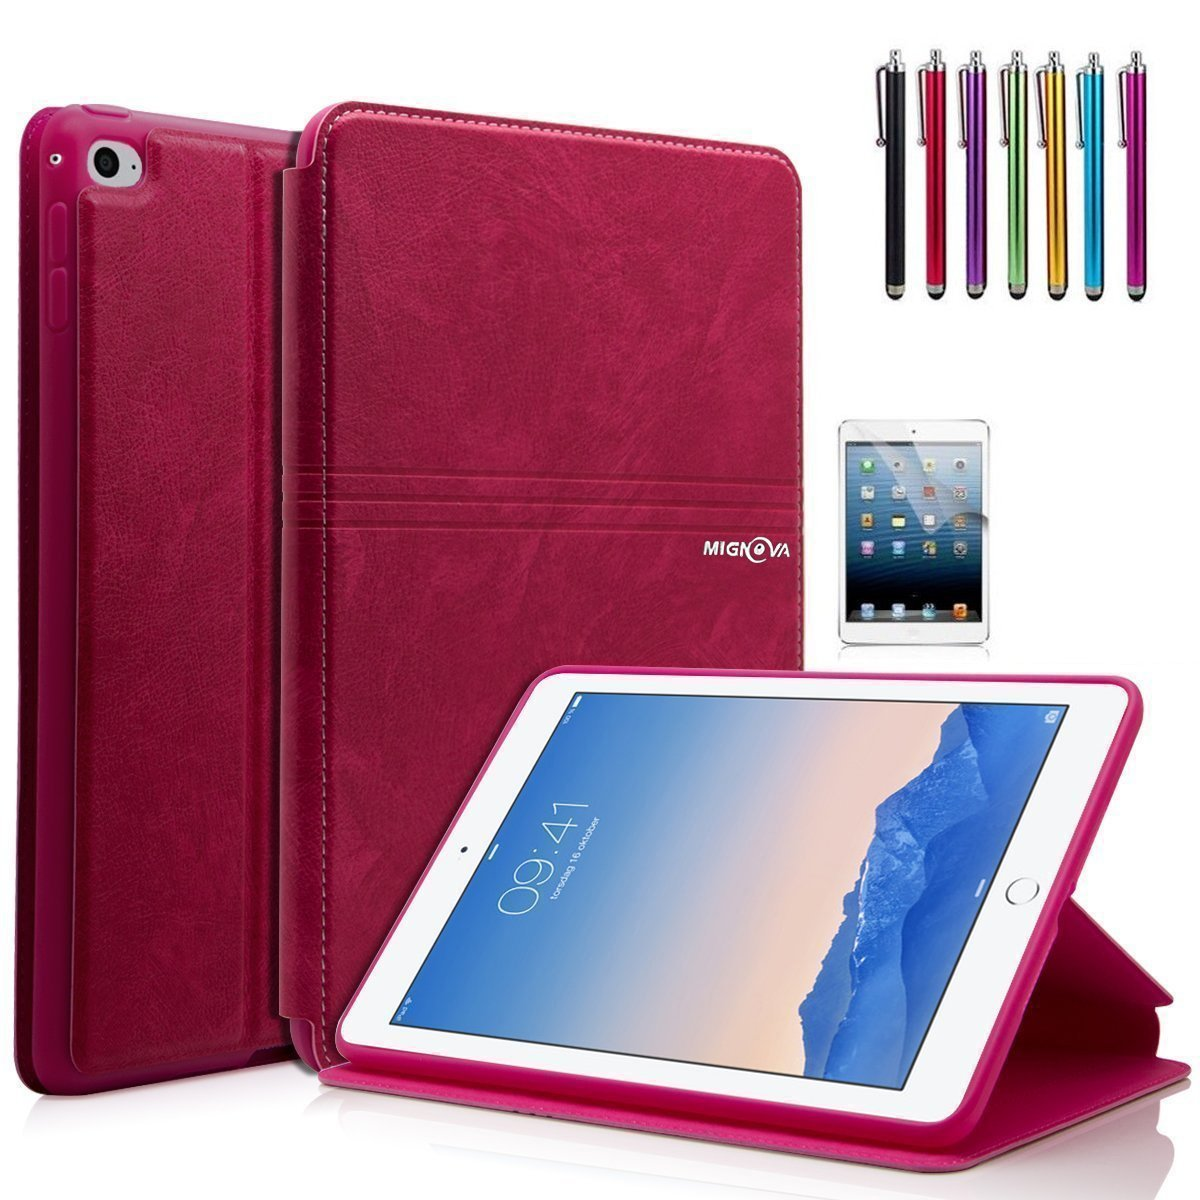 Mignova iPad Mini 4 Case - Ultra Slim Lightweight Smart Stand Cover Case With Auto Wake / Sleep for Apple iPad Mini 4 (2015 edition) 7.9 inch Tablet (2nd Pink)